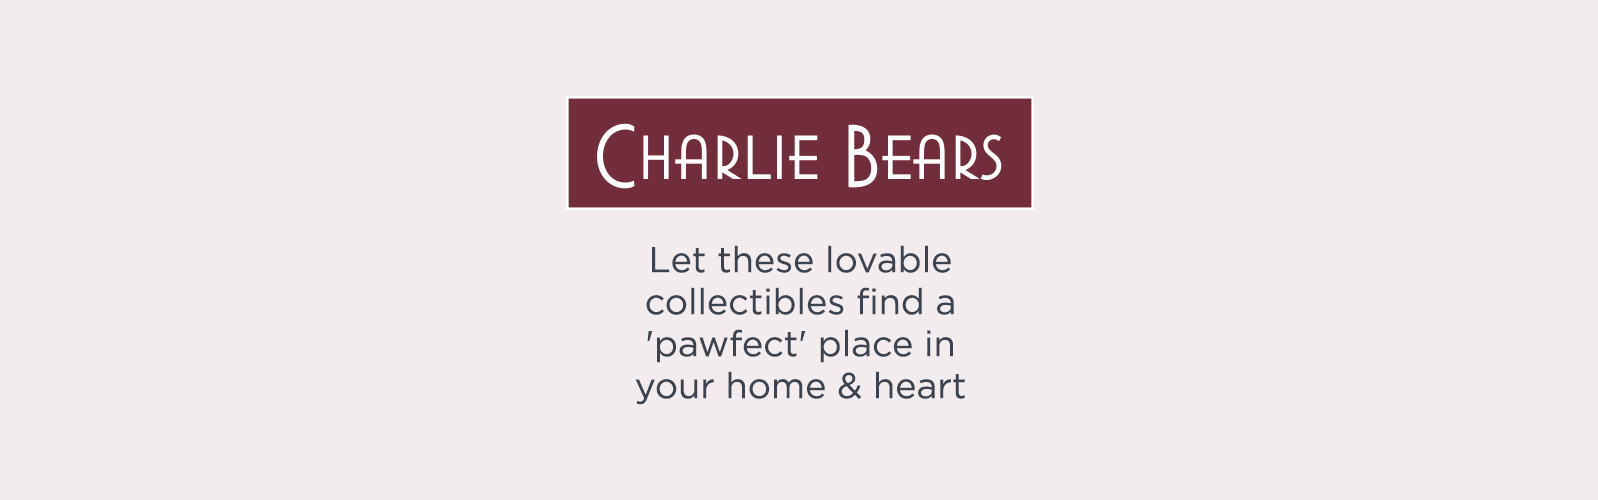 Charlie Bears. Let these lovable collectibles find a 'pawfect' place in your home & heart